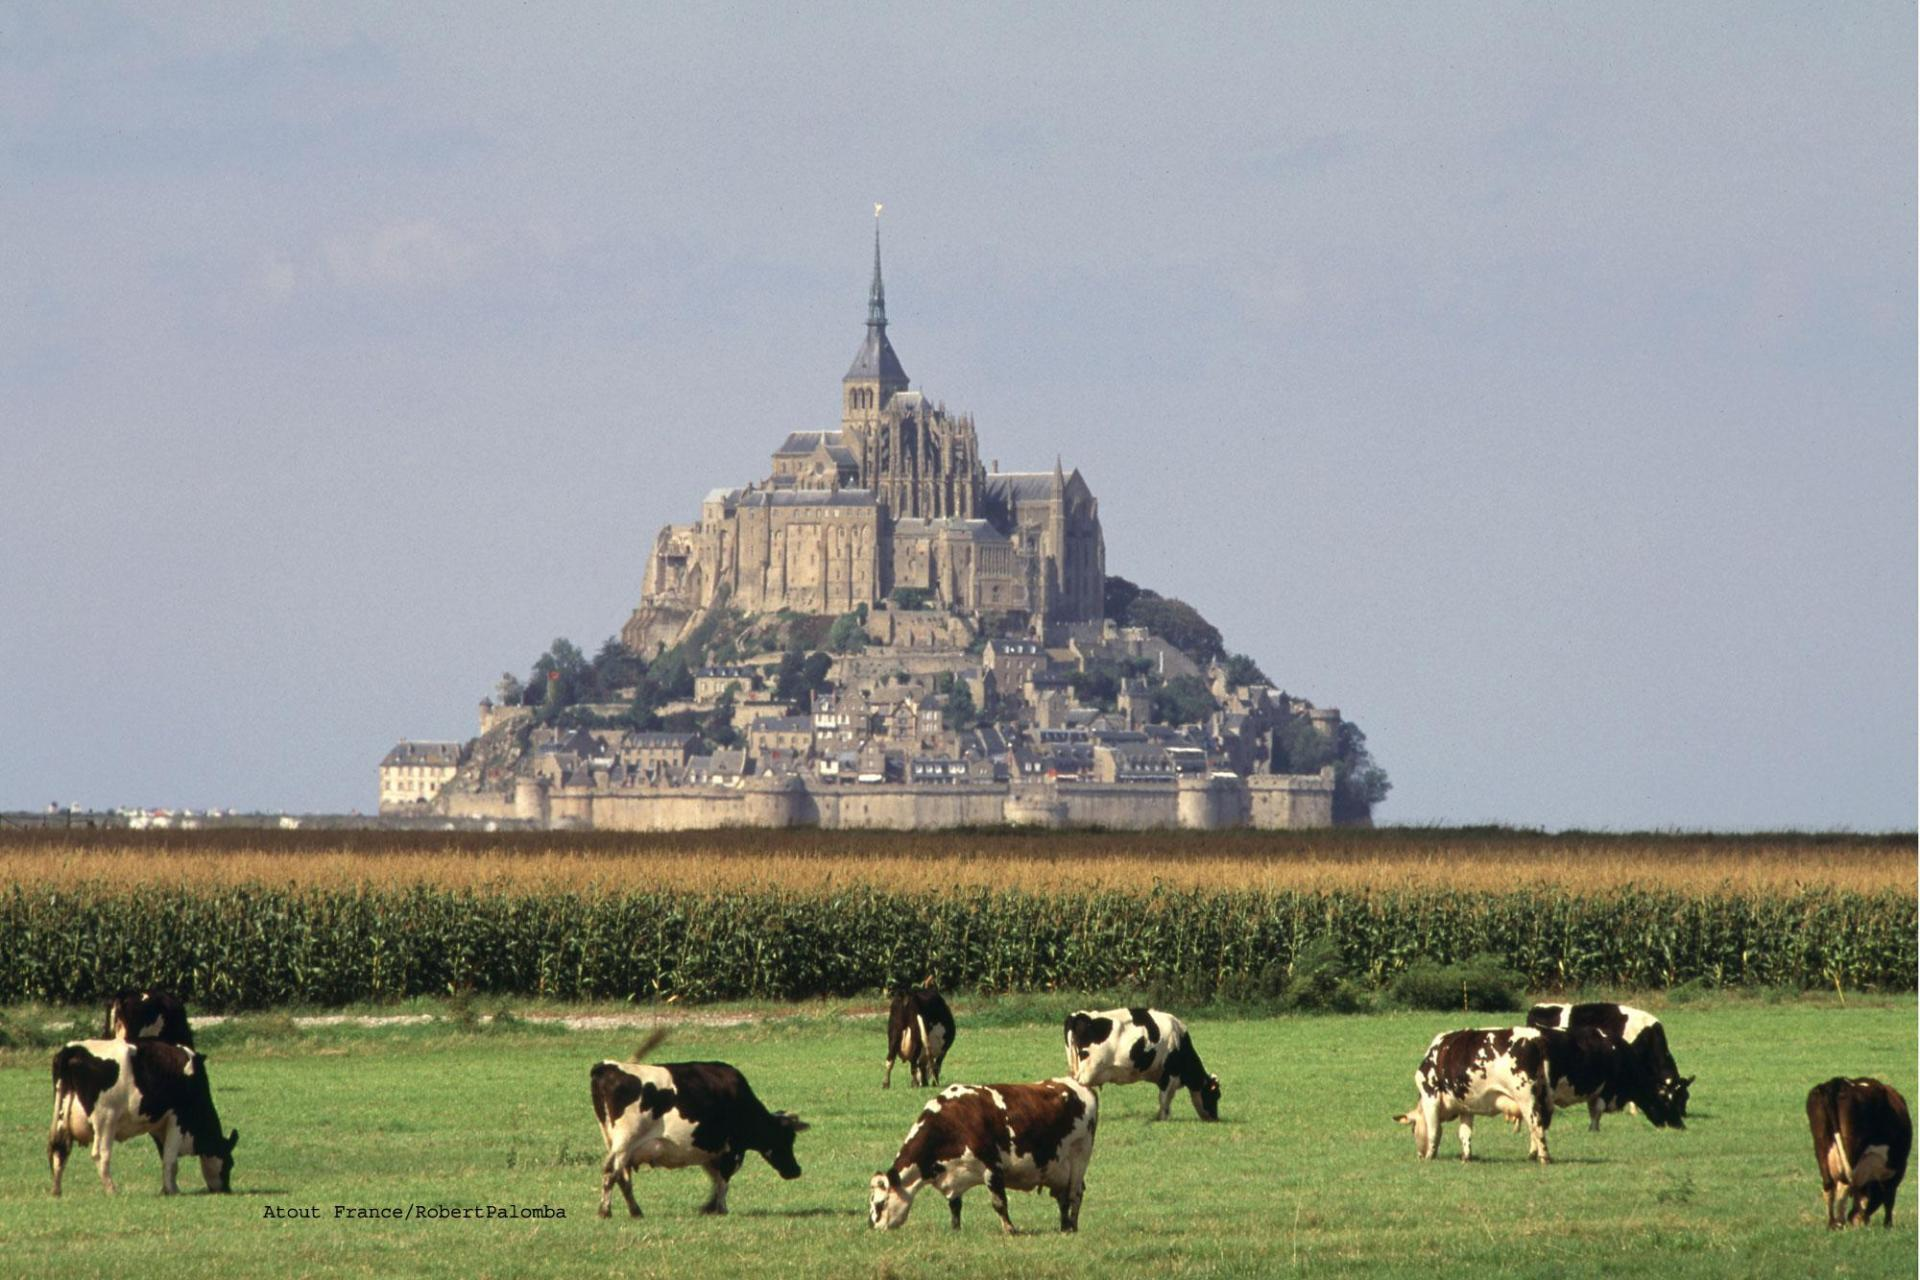 France self-guided cycling tour, Best of Normandy with Pure Adventures